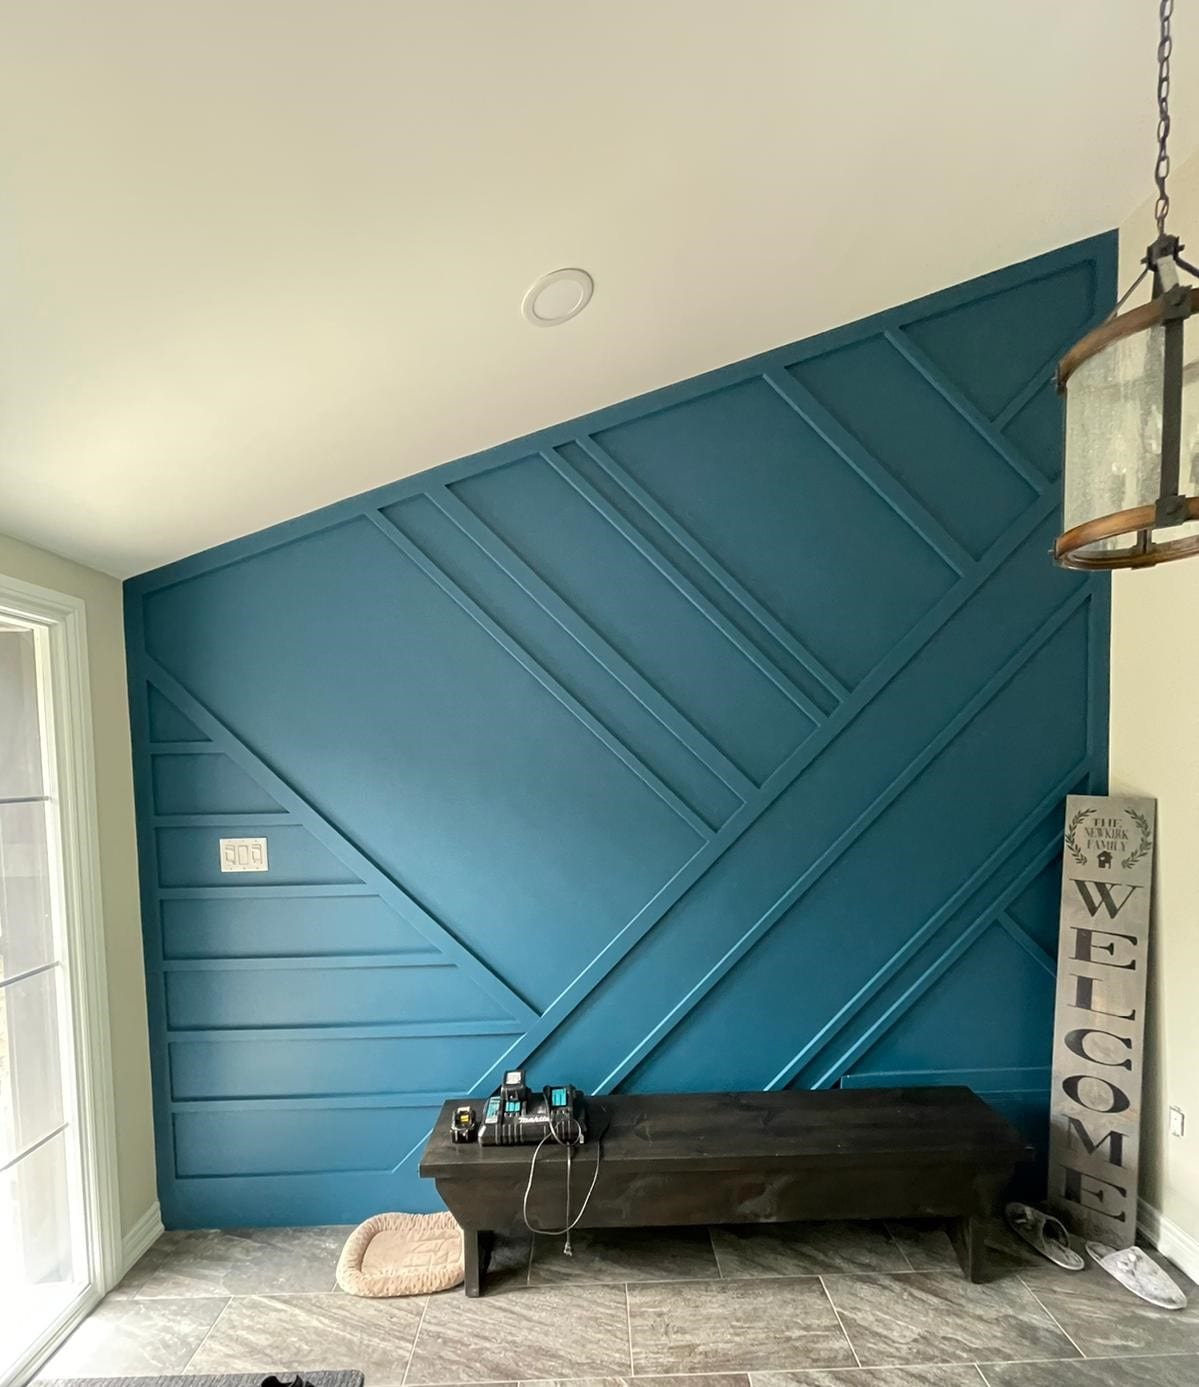 Professional, Fast interior painting giving your home a brand new look